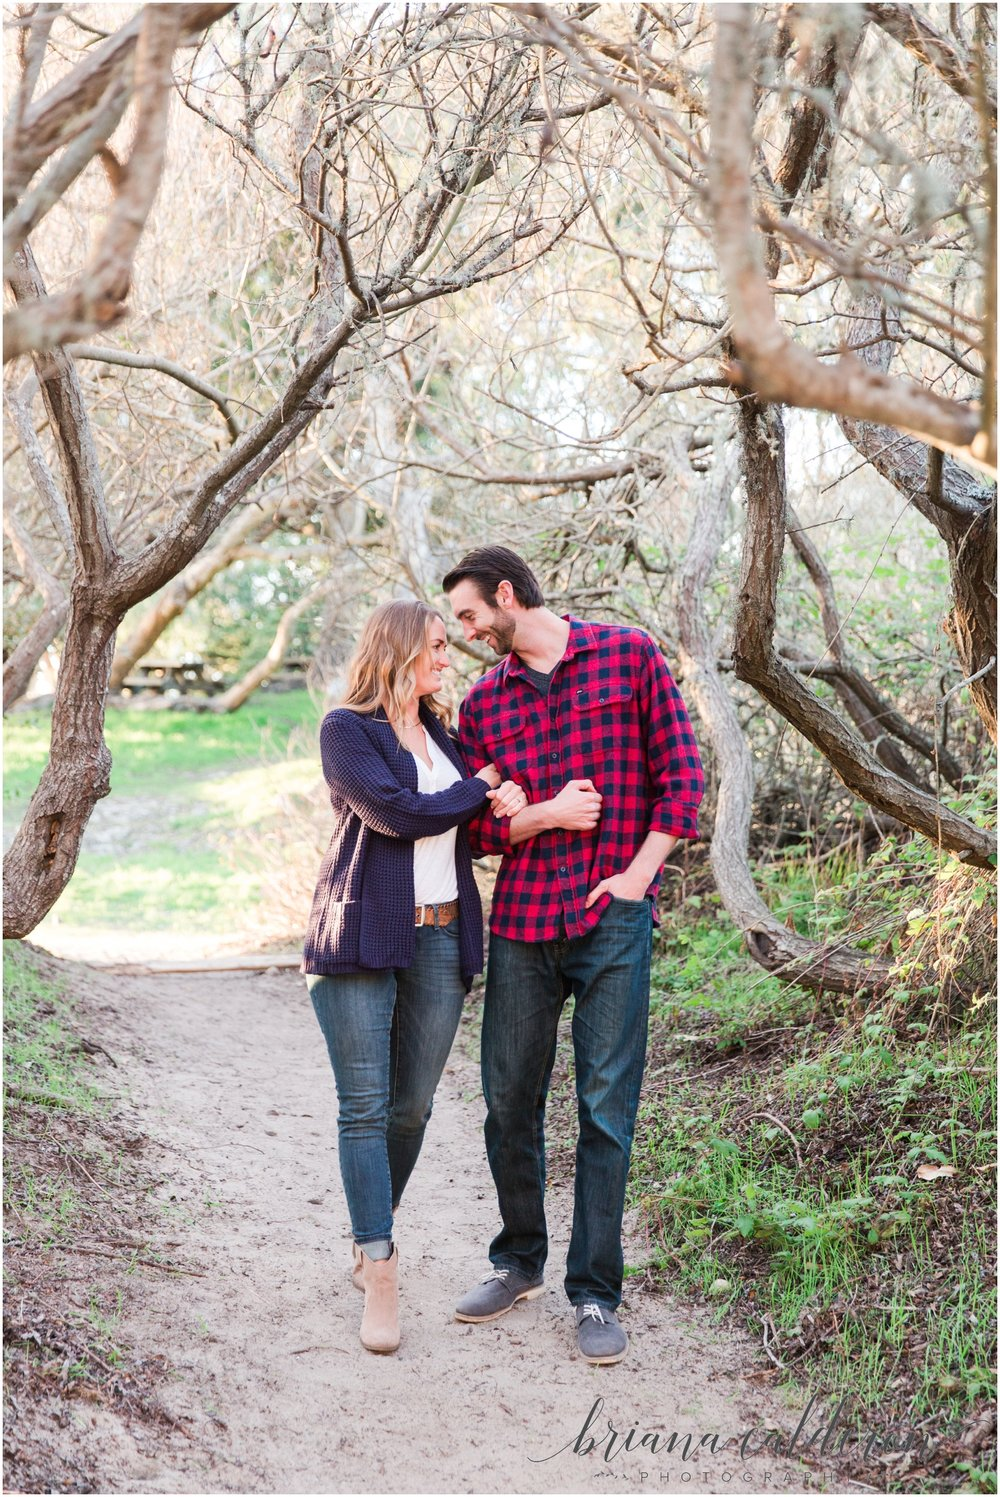 Engagement pictures at Natural Bridges in Santa Cruz by Briana Calderon Photography_1293.jpg